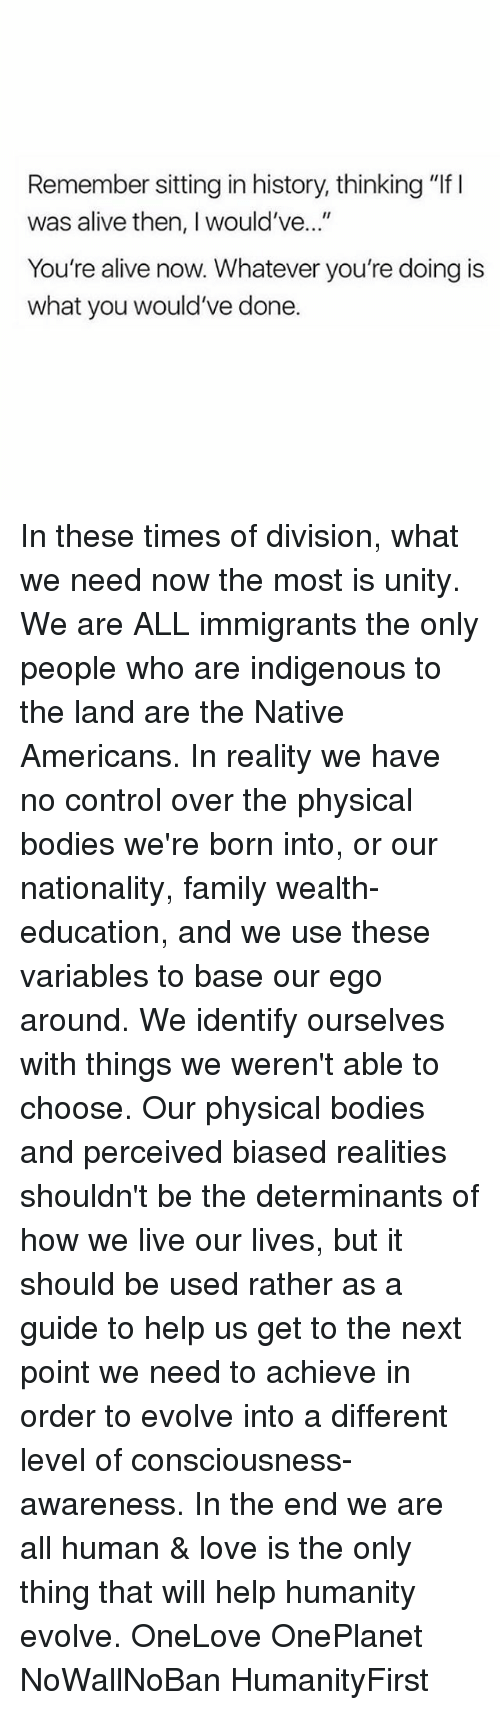 """divisive: Remember sitting in history, thinking """"lf l  was alive then, would've  You're alive now. Whatever you're doing is  what you would've done. In these times of division, what we need now the most is unity. We are ALL immigrants the only people who are indigenous to the land are the Native Americans. In reality we have no control over the physical bodies we're born into, or our nationality, family wealth- education, and we use these variables to base our ego around. We identify ourselves with things we weren't able to choose. Our physical bodies and perceived biased realities shouldn't be the determinants of how we live our lives, but it should be used rather as a guide to help us get to the next point we need to achieve in order to evolve into a different level of consciousness-awareness. In the end we are all human & love is the only thing that will help humanity evolve. OneLove OnePlanet NoWallNoBan HumanityFirst"""